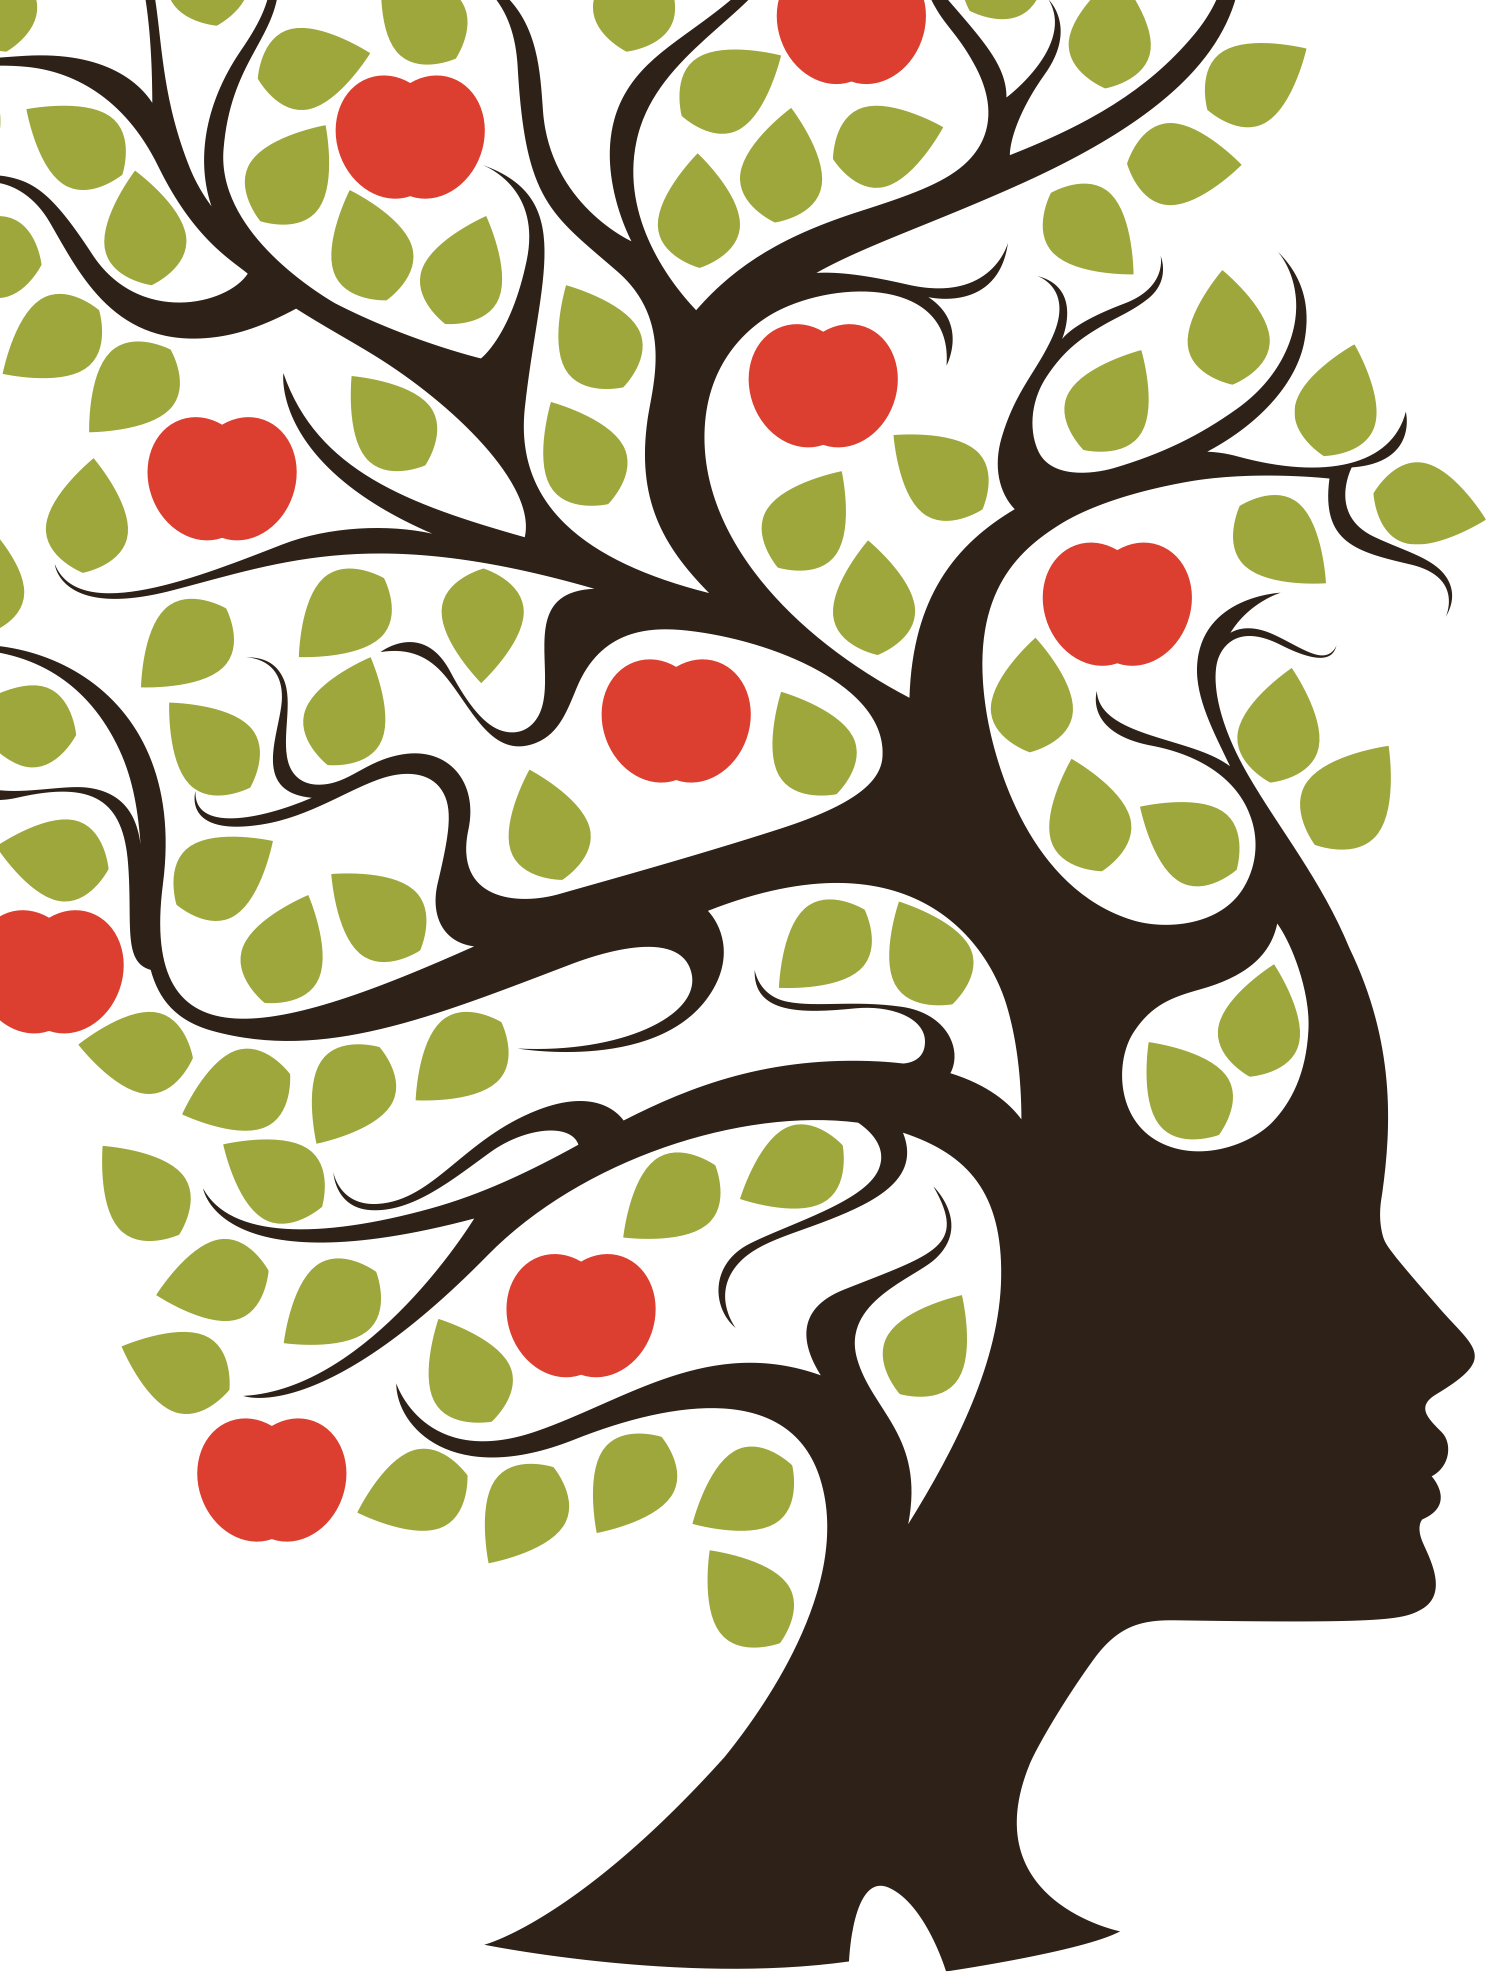 Woman with branches for hair, with leaves and apples on